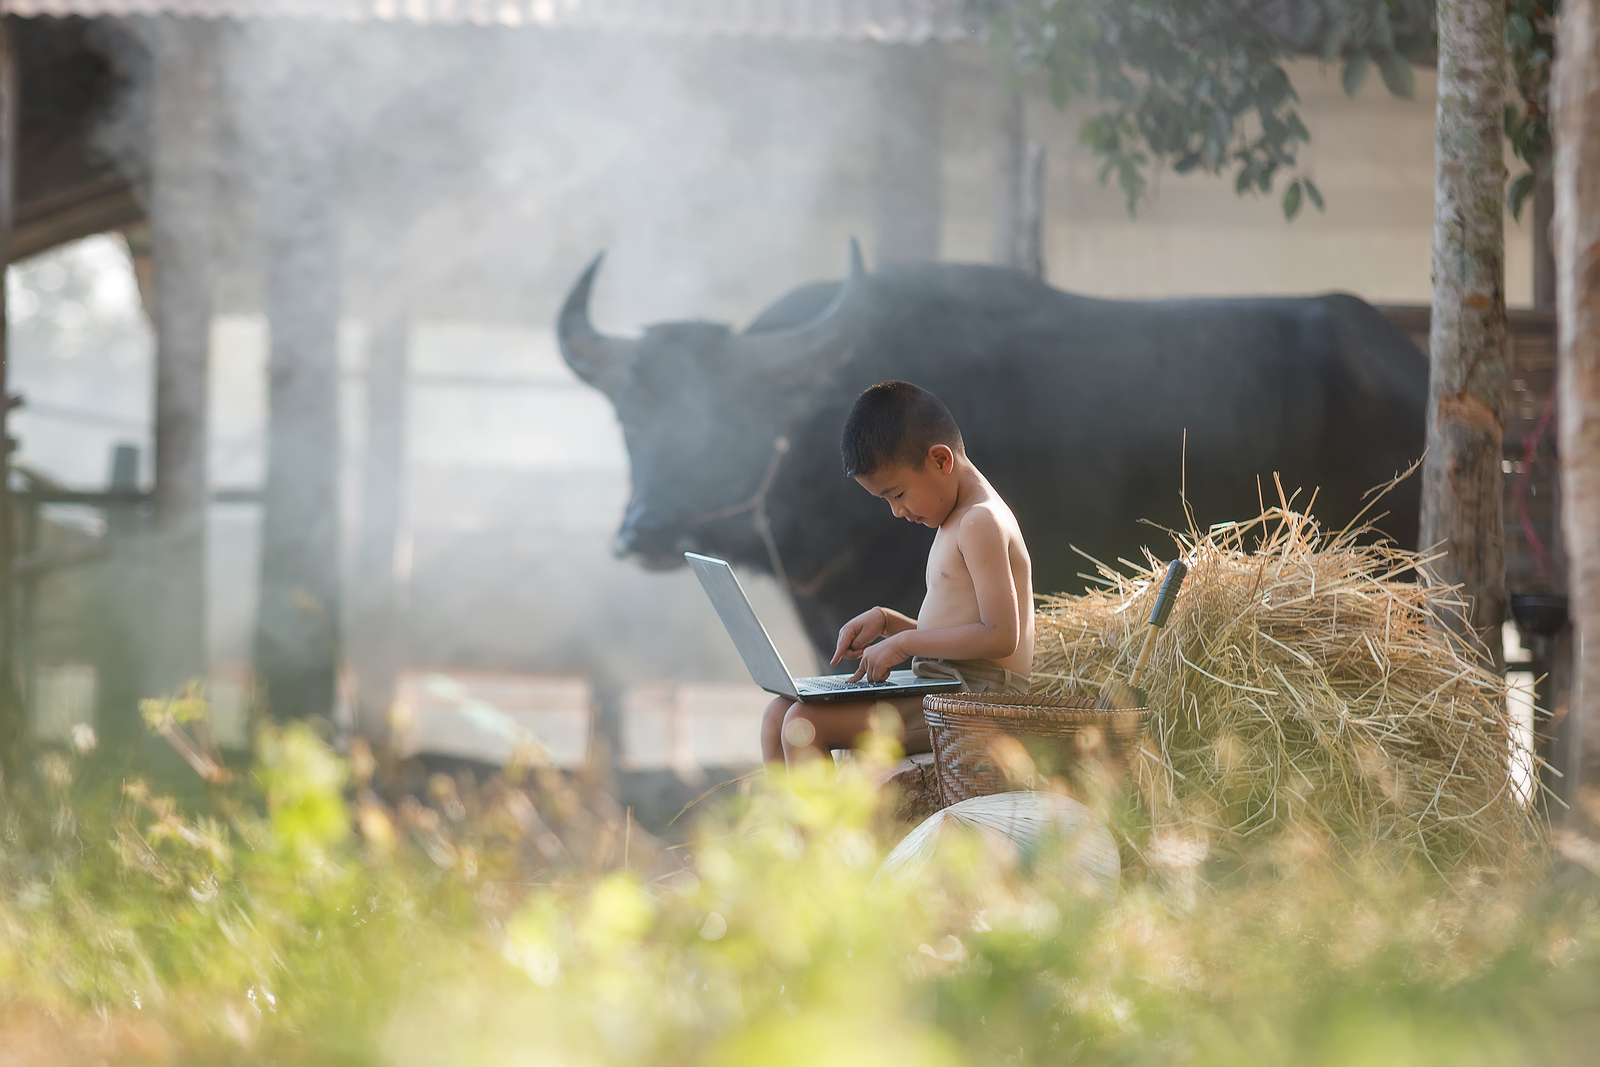 bigstock-Young-Farmer-Playing-Laptop-In-225052447.jpg